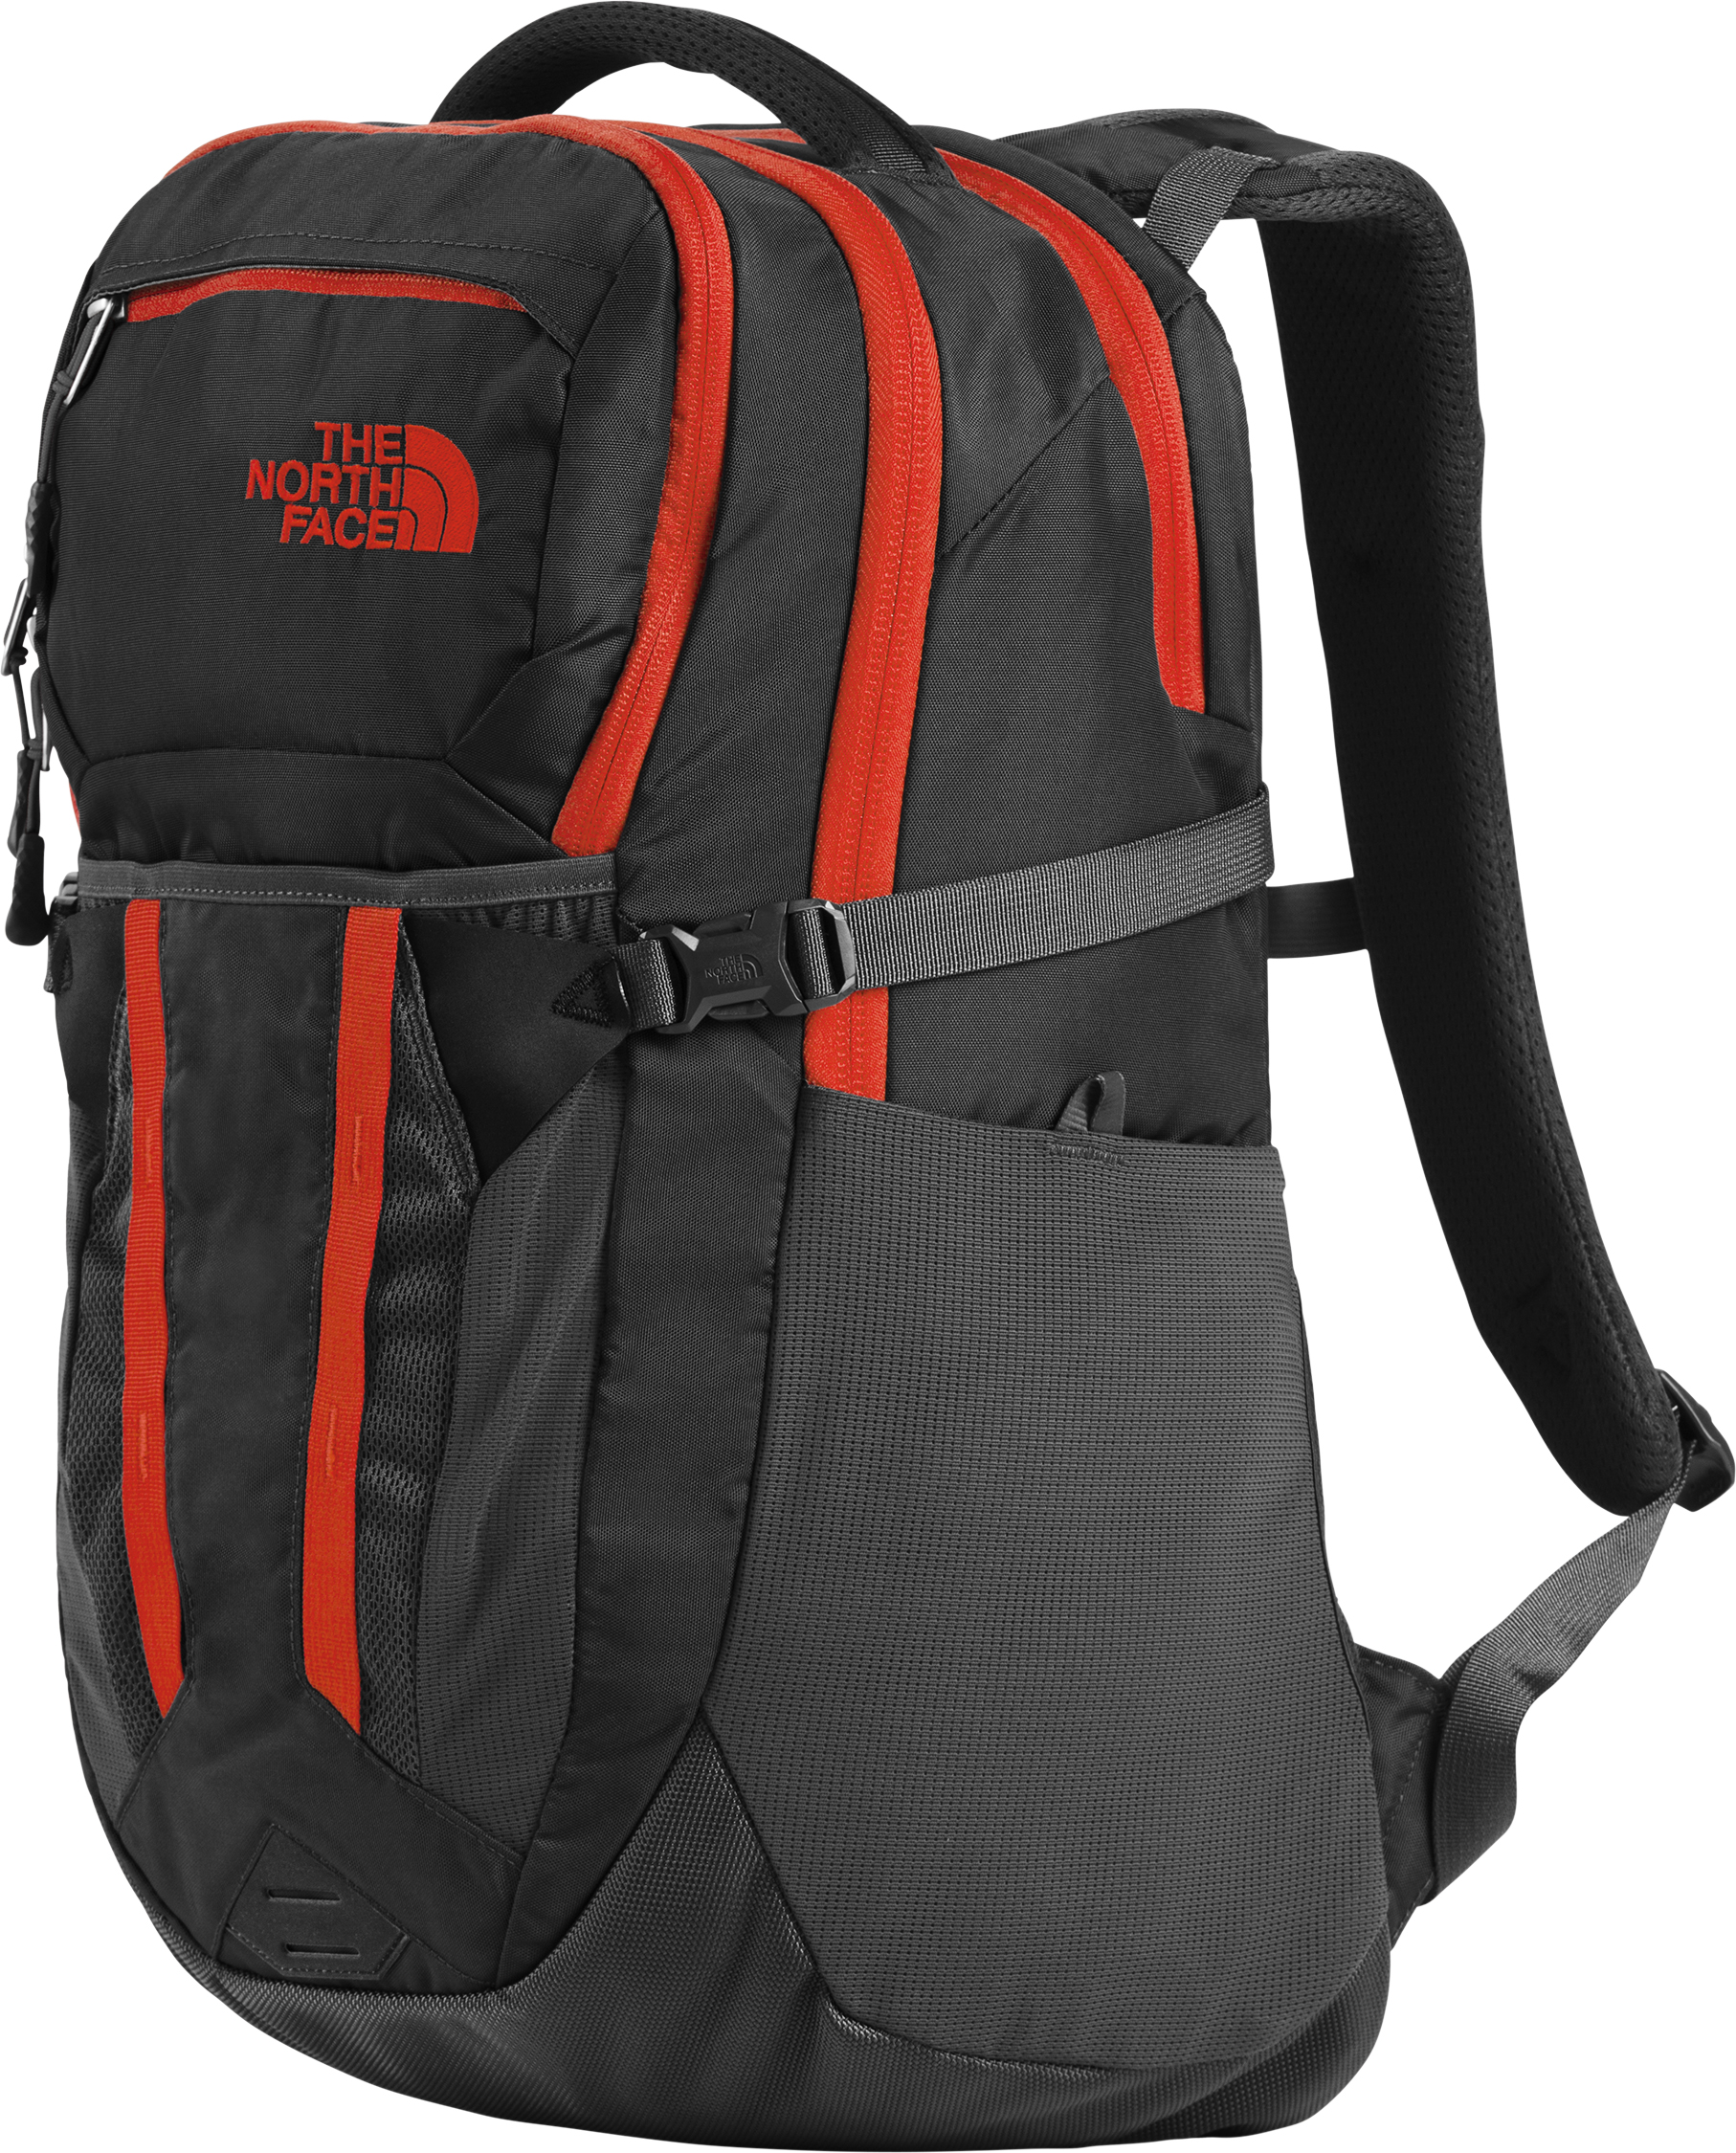 07f9ff0c2 The North Face All products | MEC